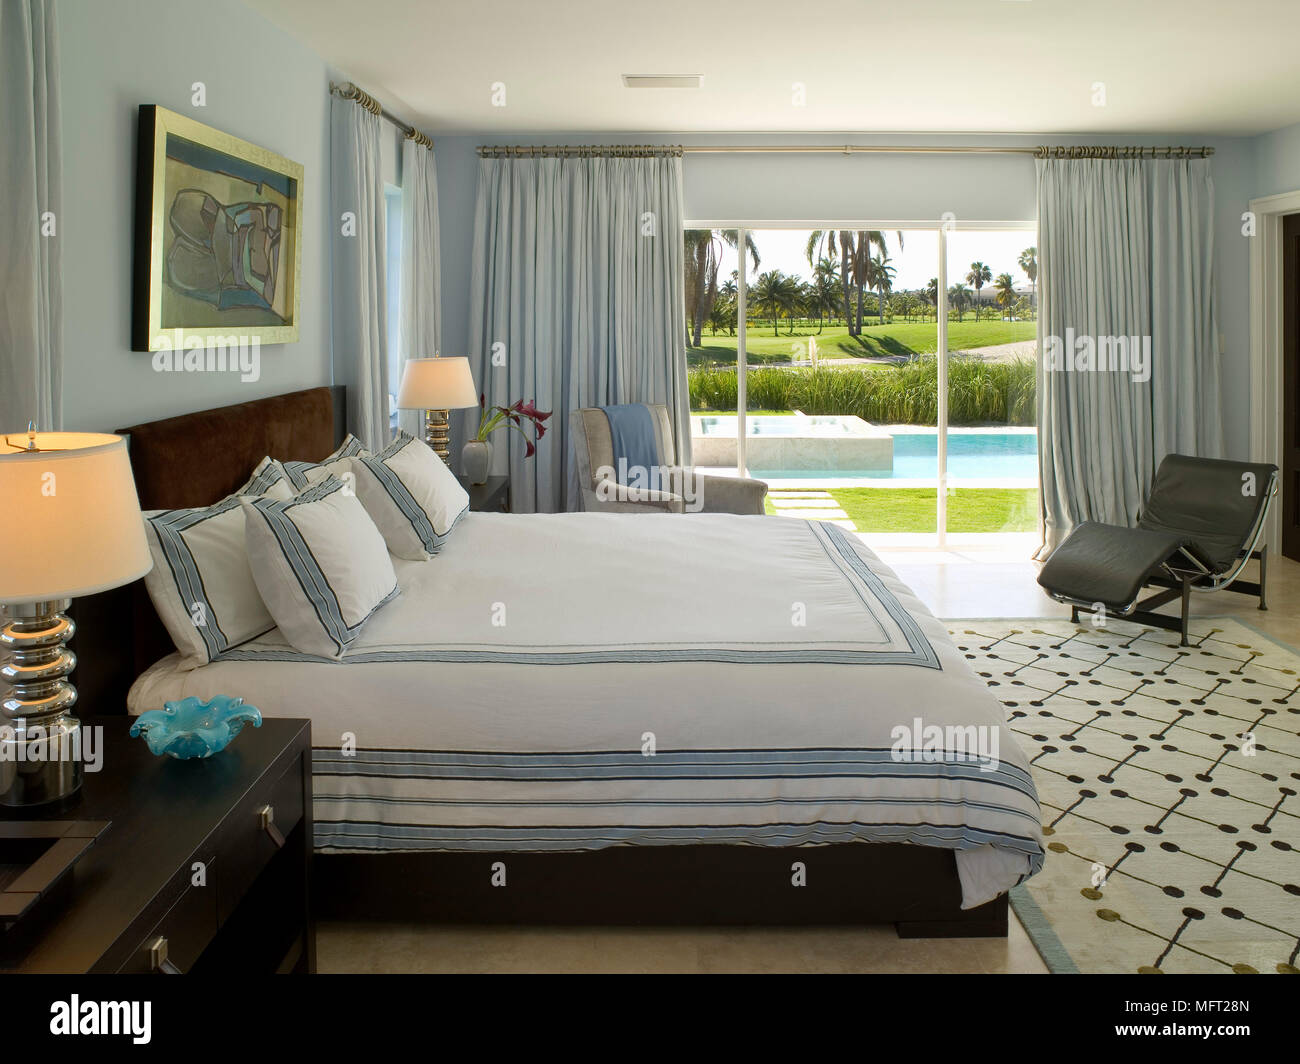 Bedroom With Framed Artwork Above Double Bed And Large Rug Leading